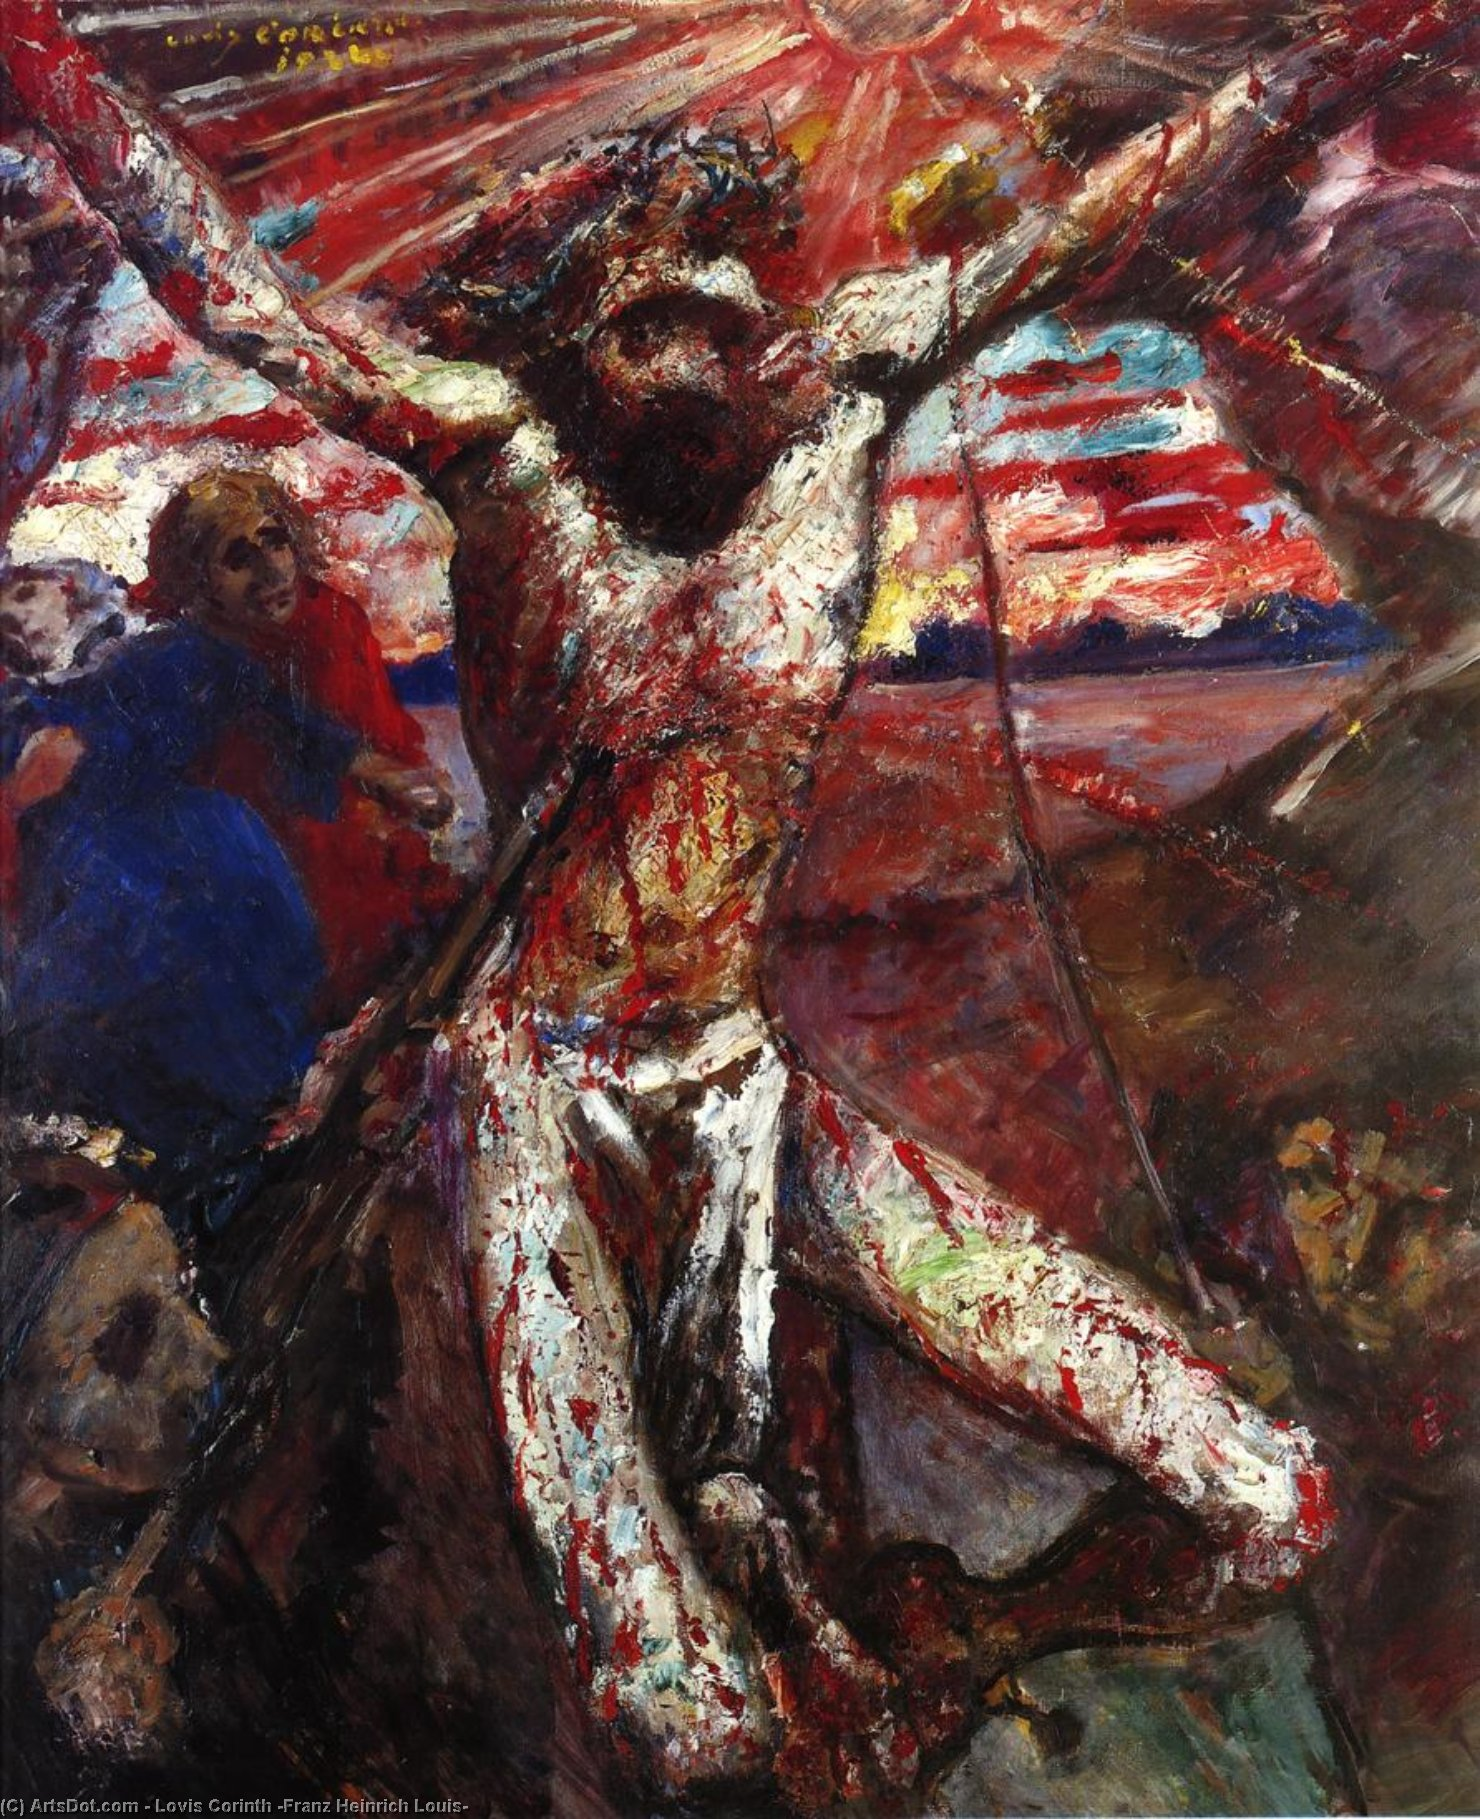 Red Christ, Painting by Lovis Corinth (Franz Heinrich Louis) (1858-1925, Netherlands)